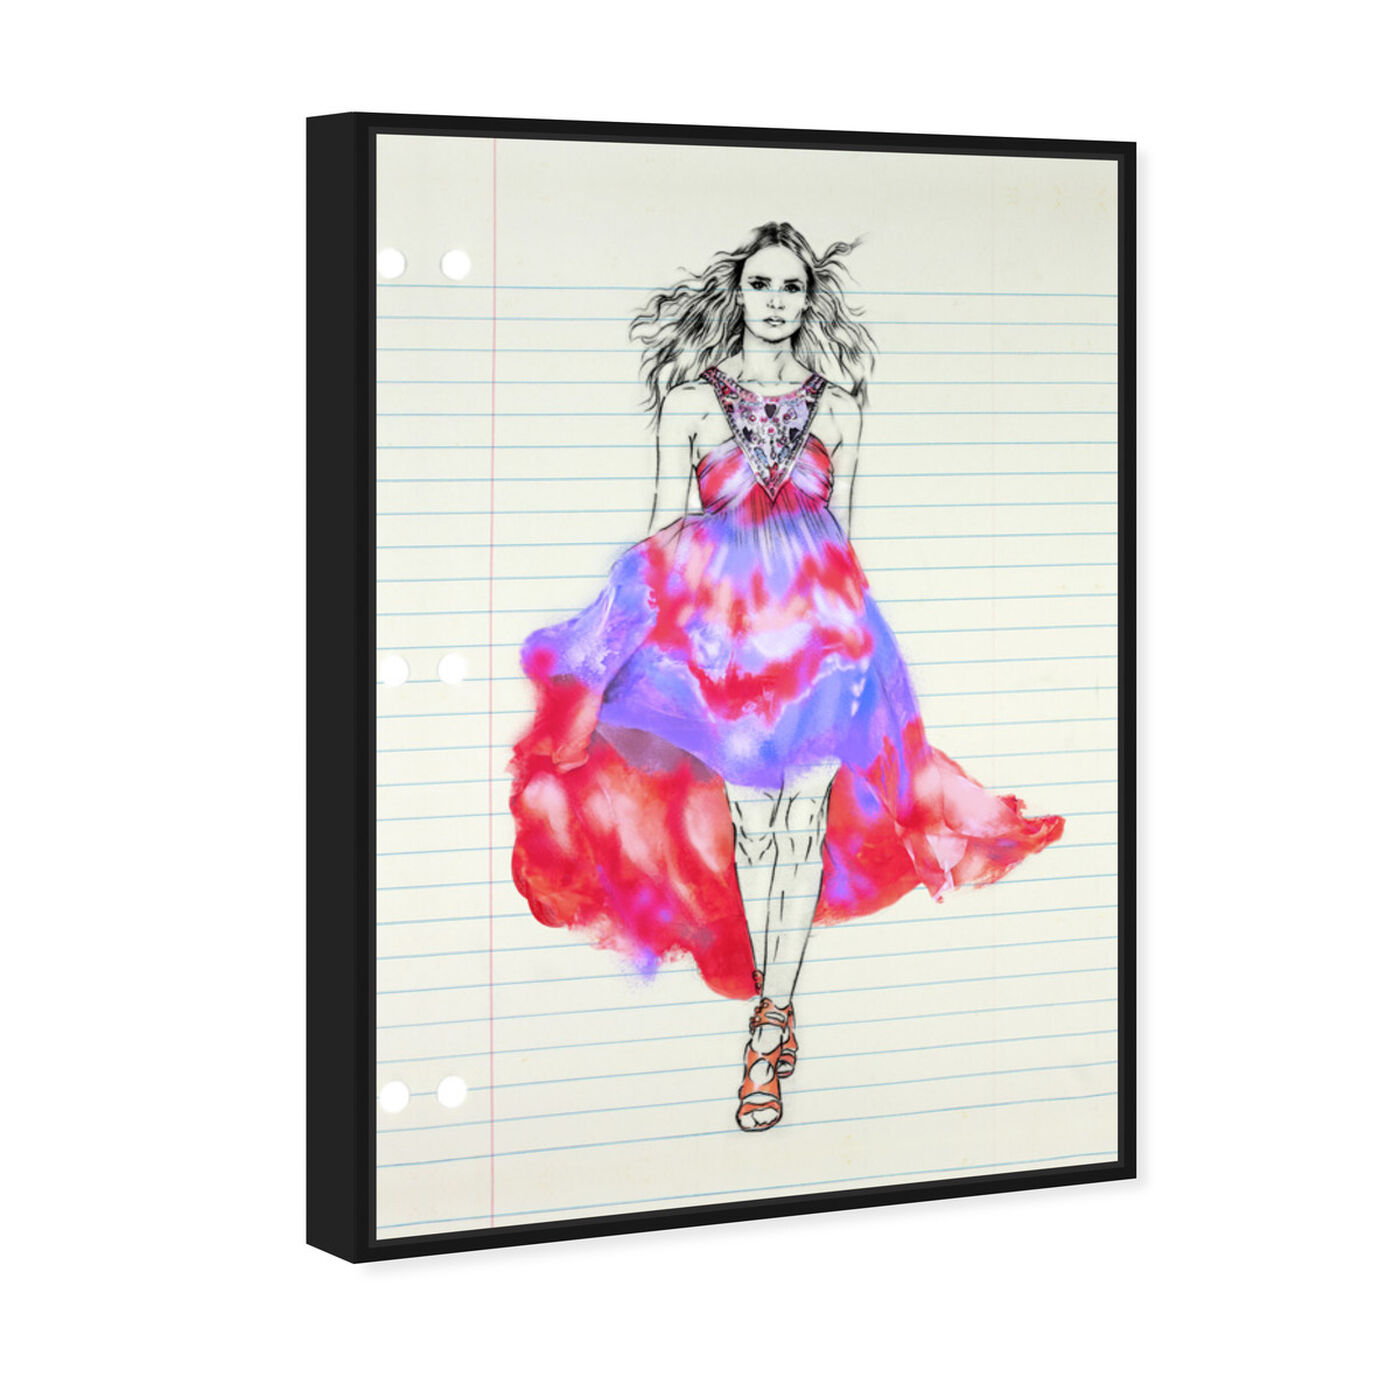 Angled view of Fashion Illustration 1 featuring fashion and glam and dress art.